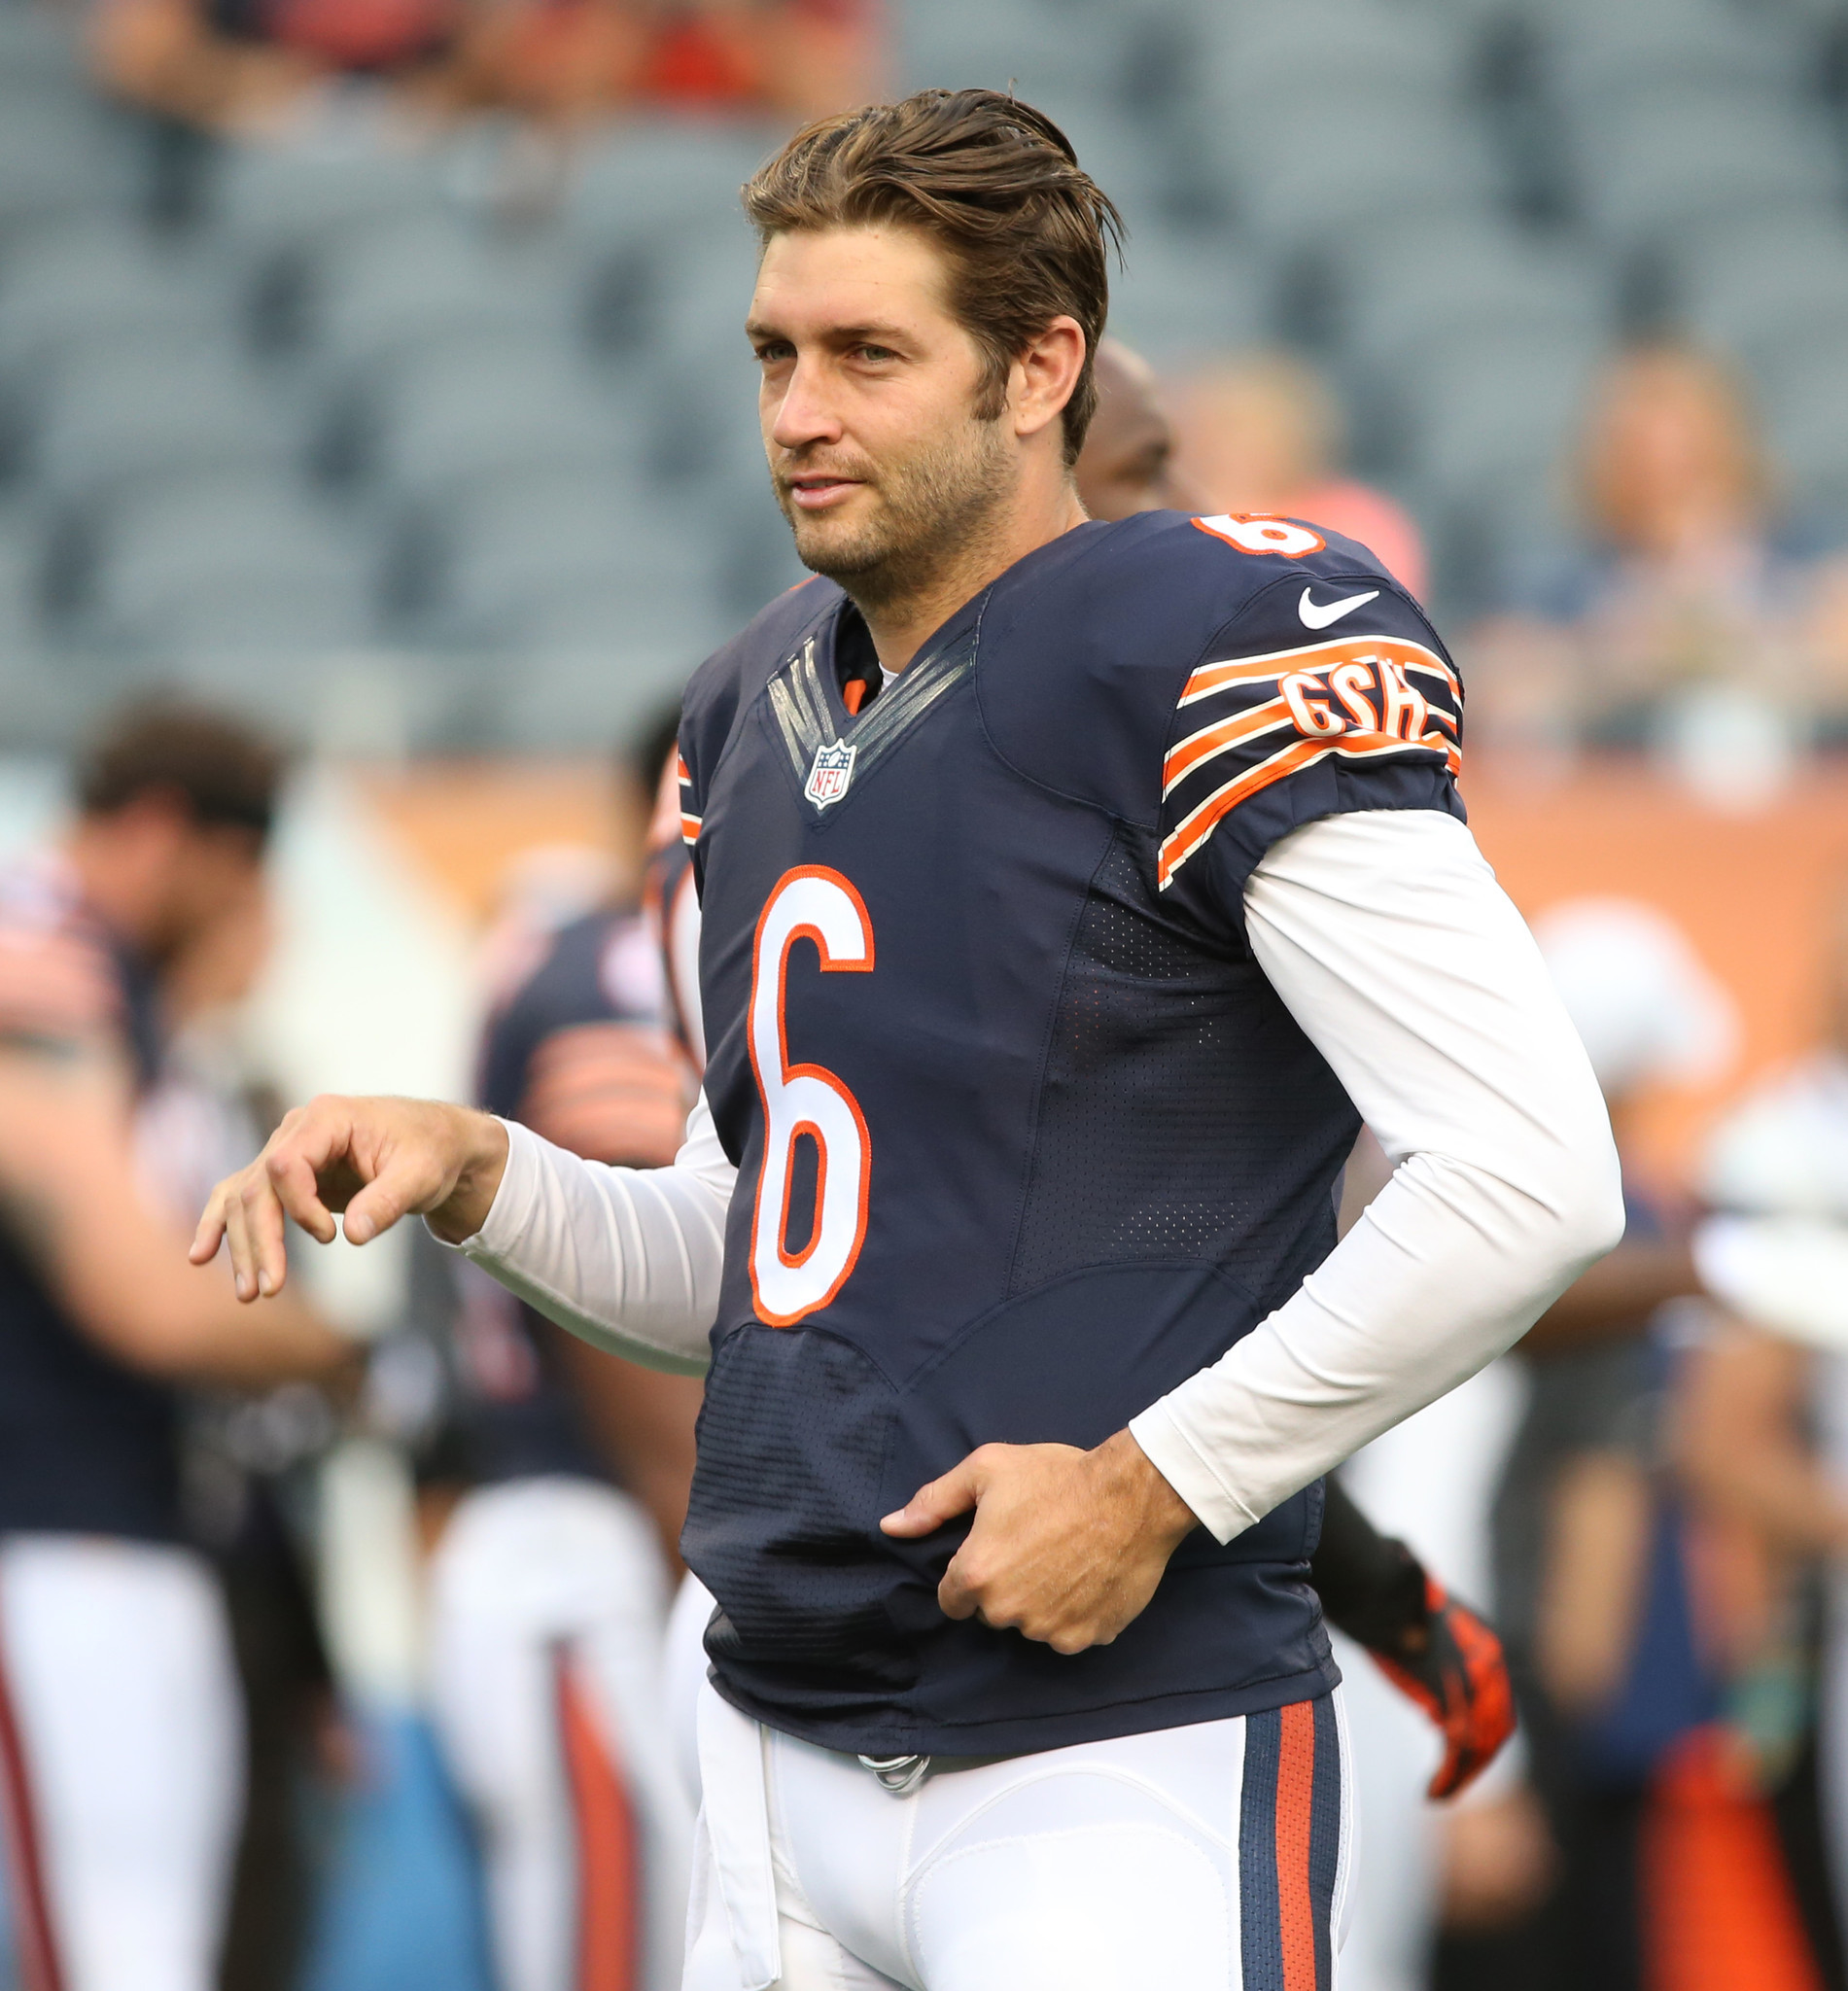 Bears roster firming up but questions remain